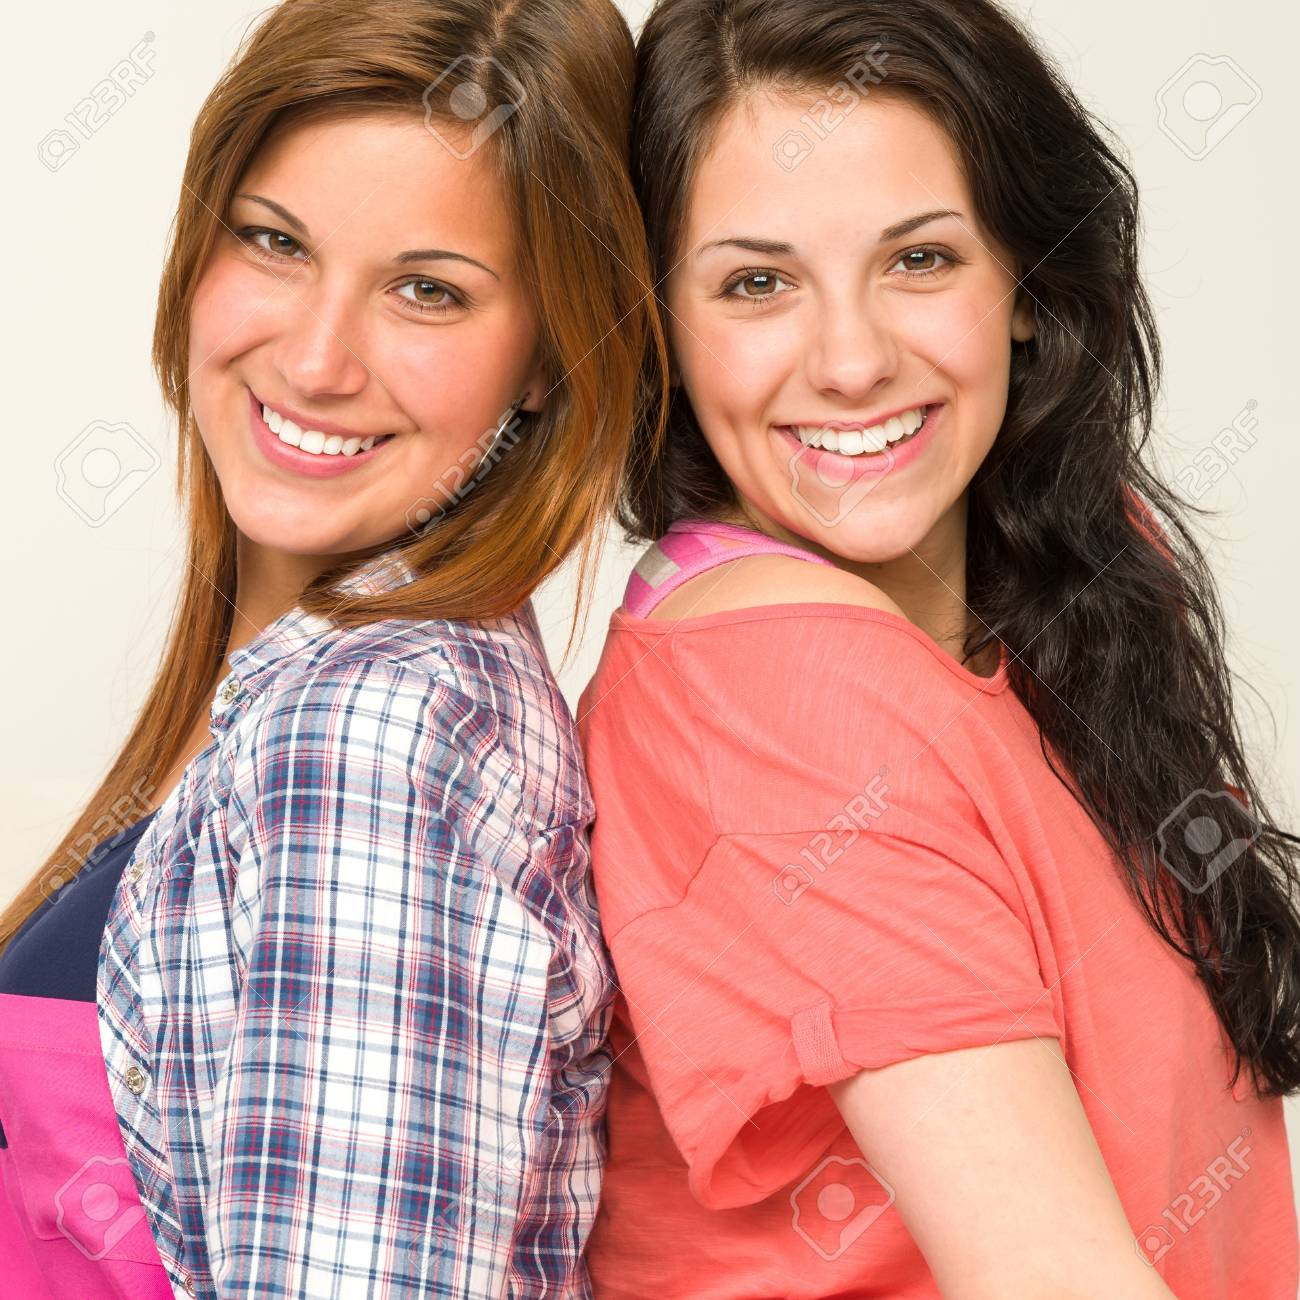 Happy teen sisters friends smiling and looking at camera Stock Photo - 20244529